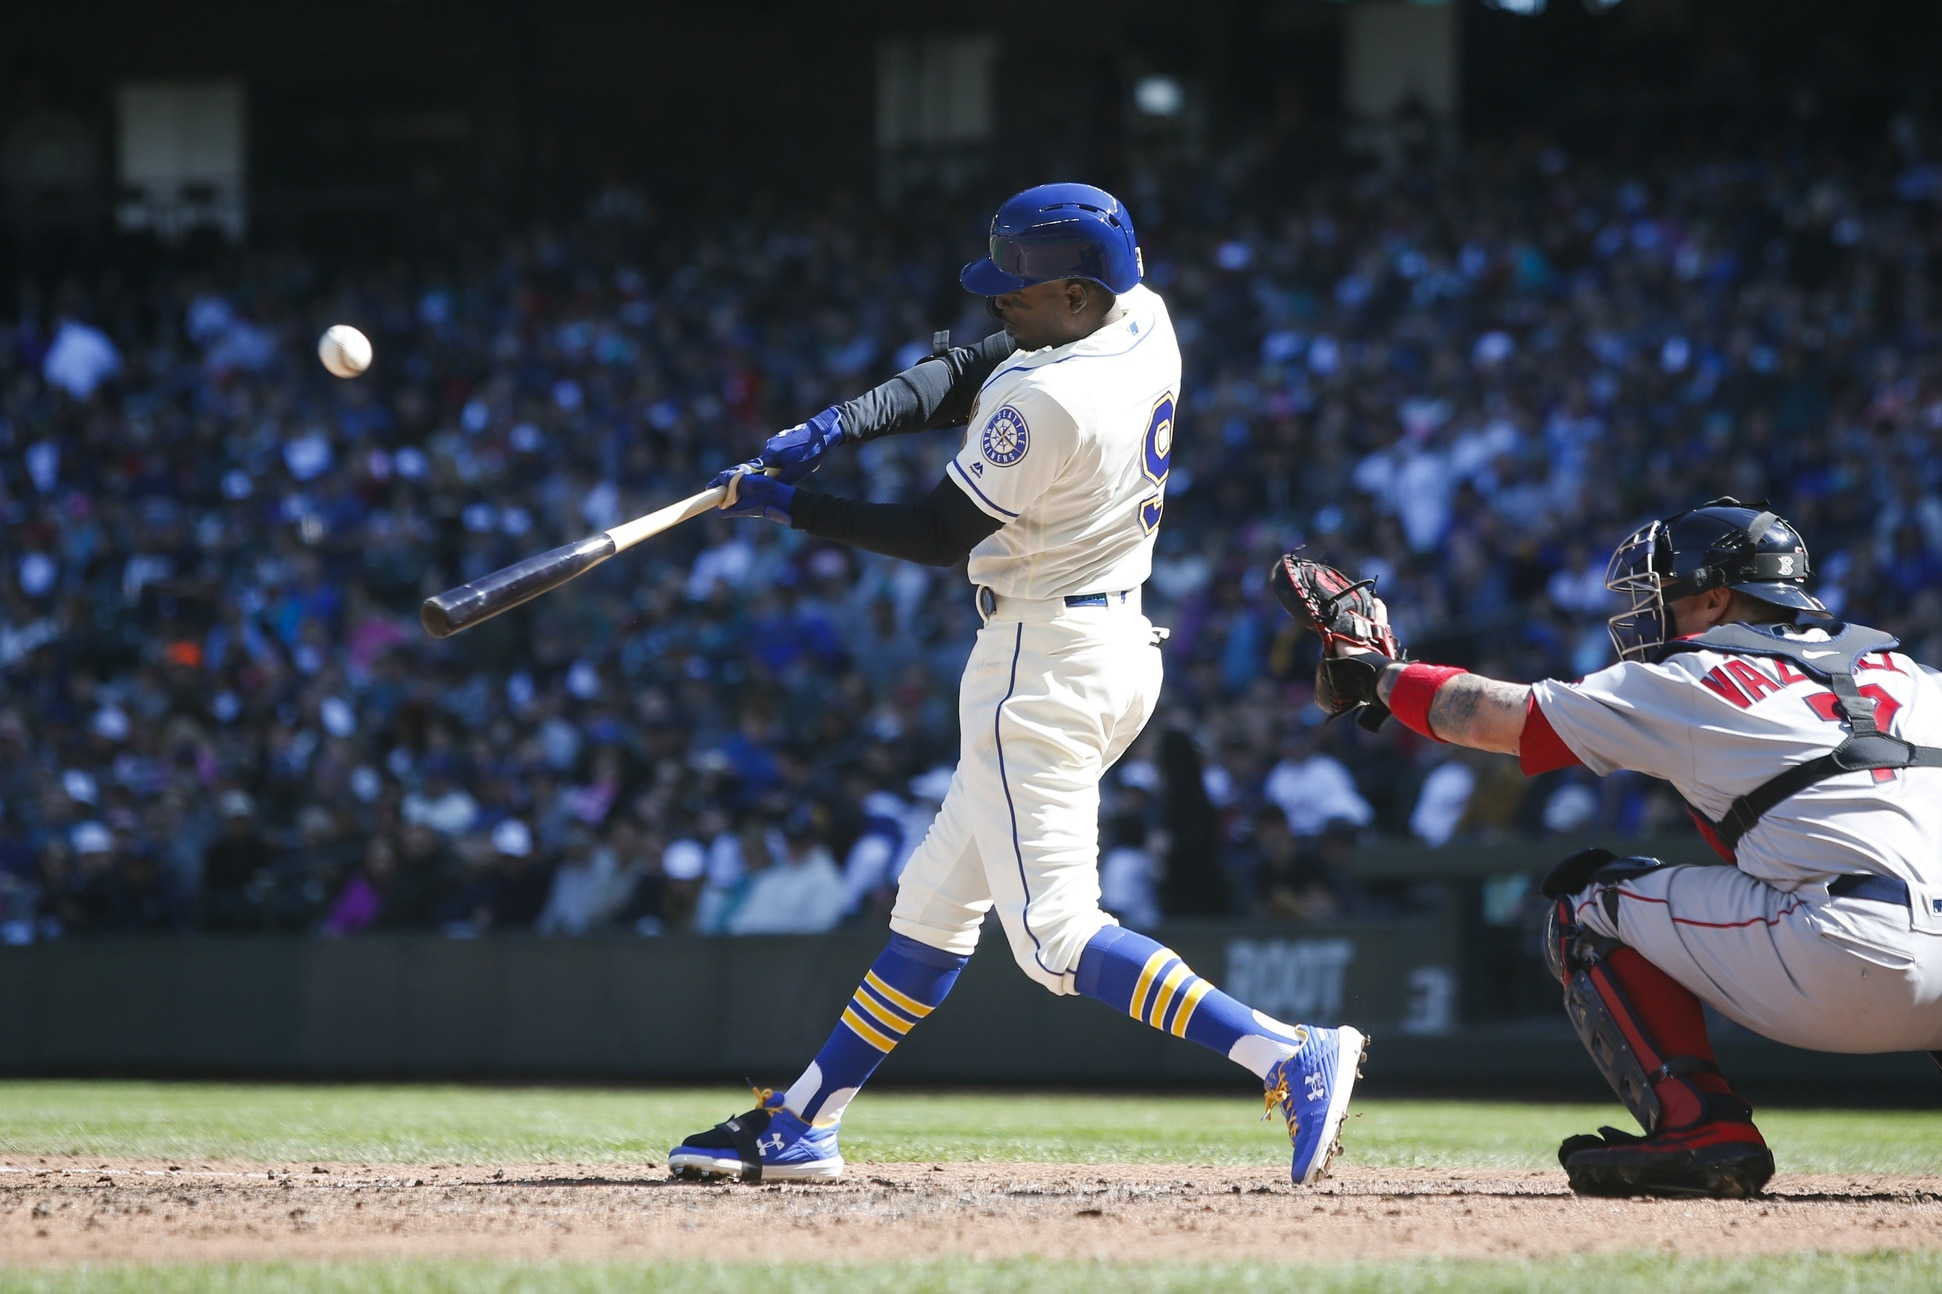 M's slip past Royals on Haniger homer